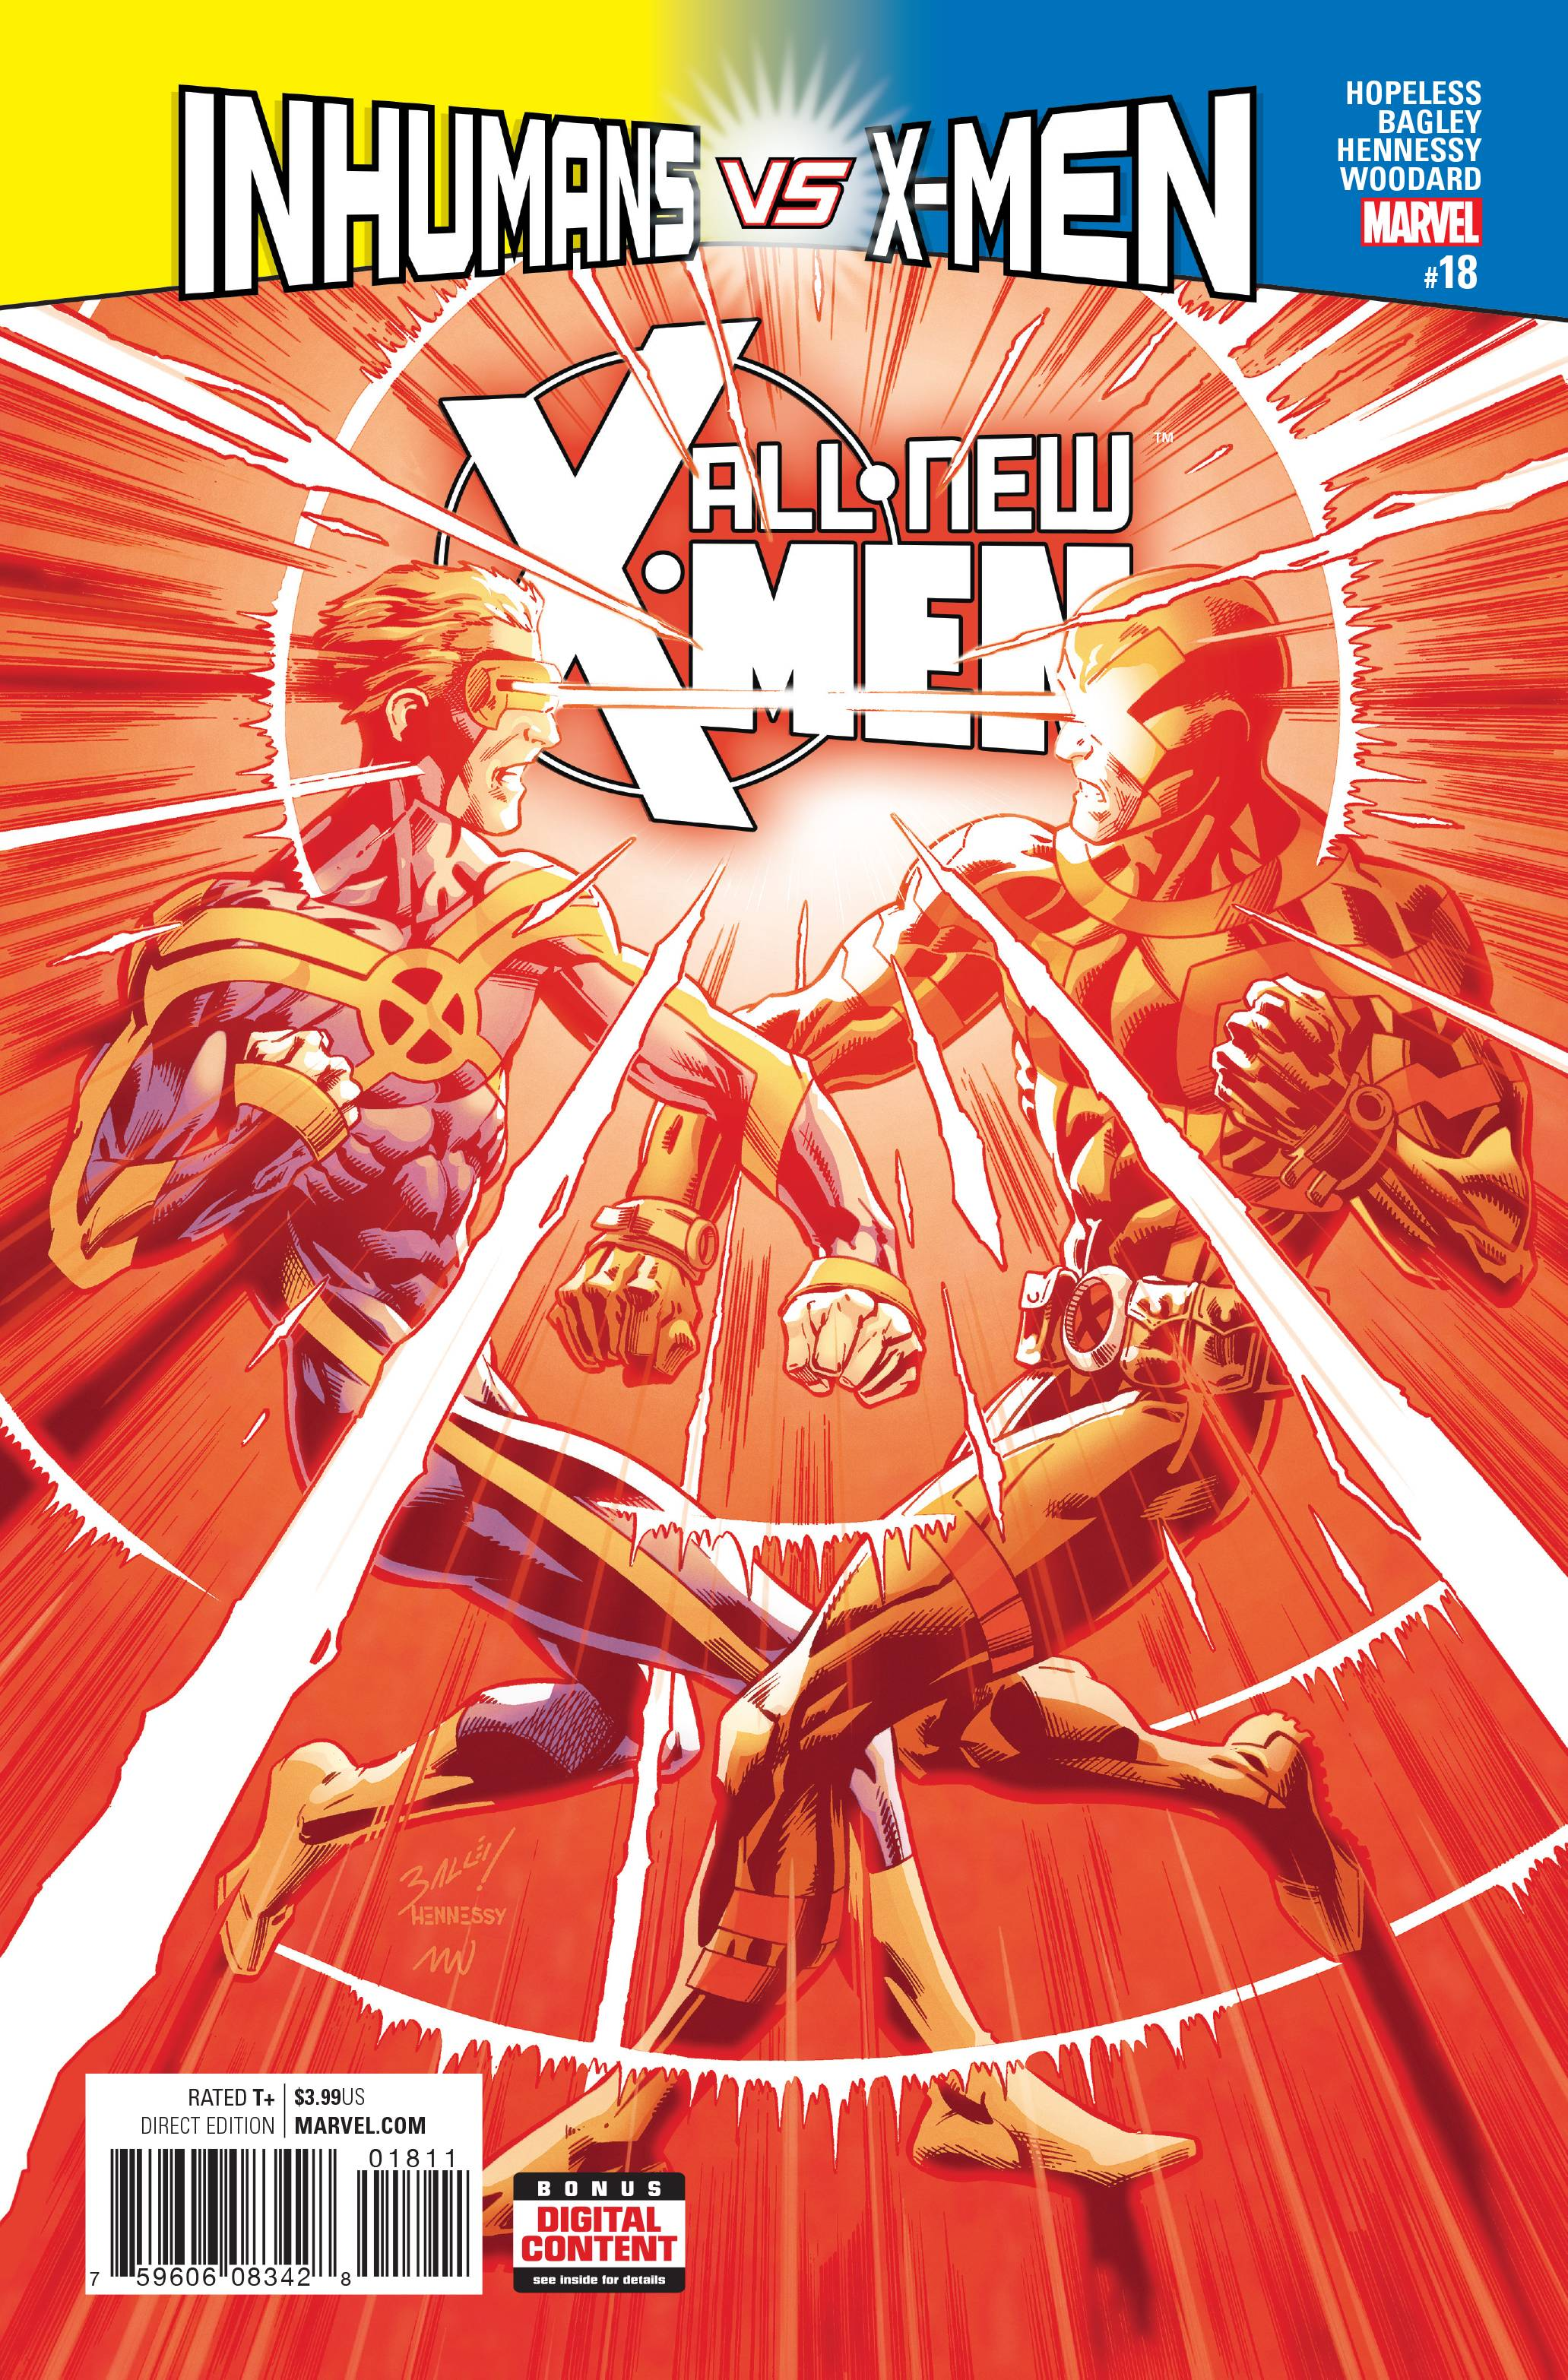 ALL NEW X-MEN #18 IVX